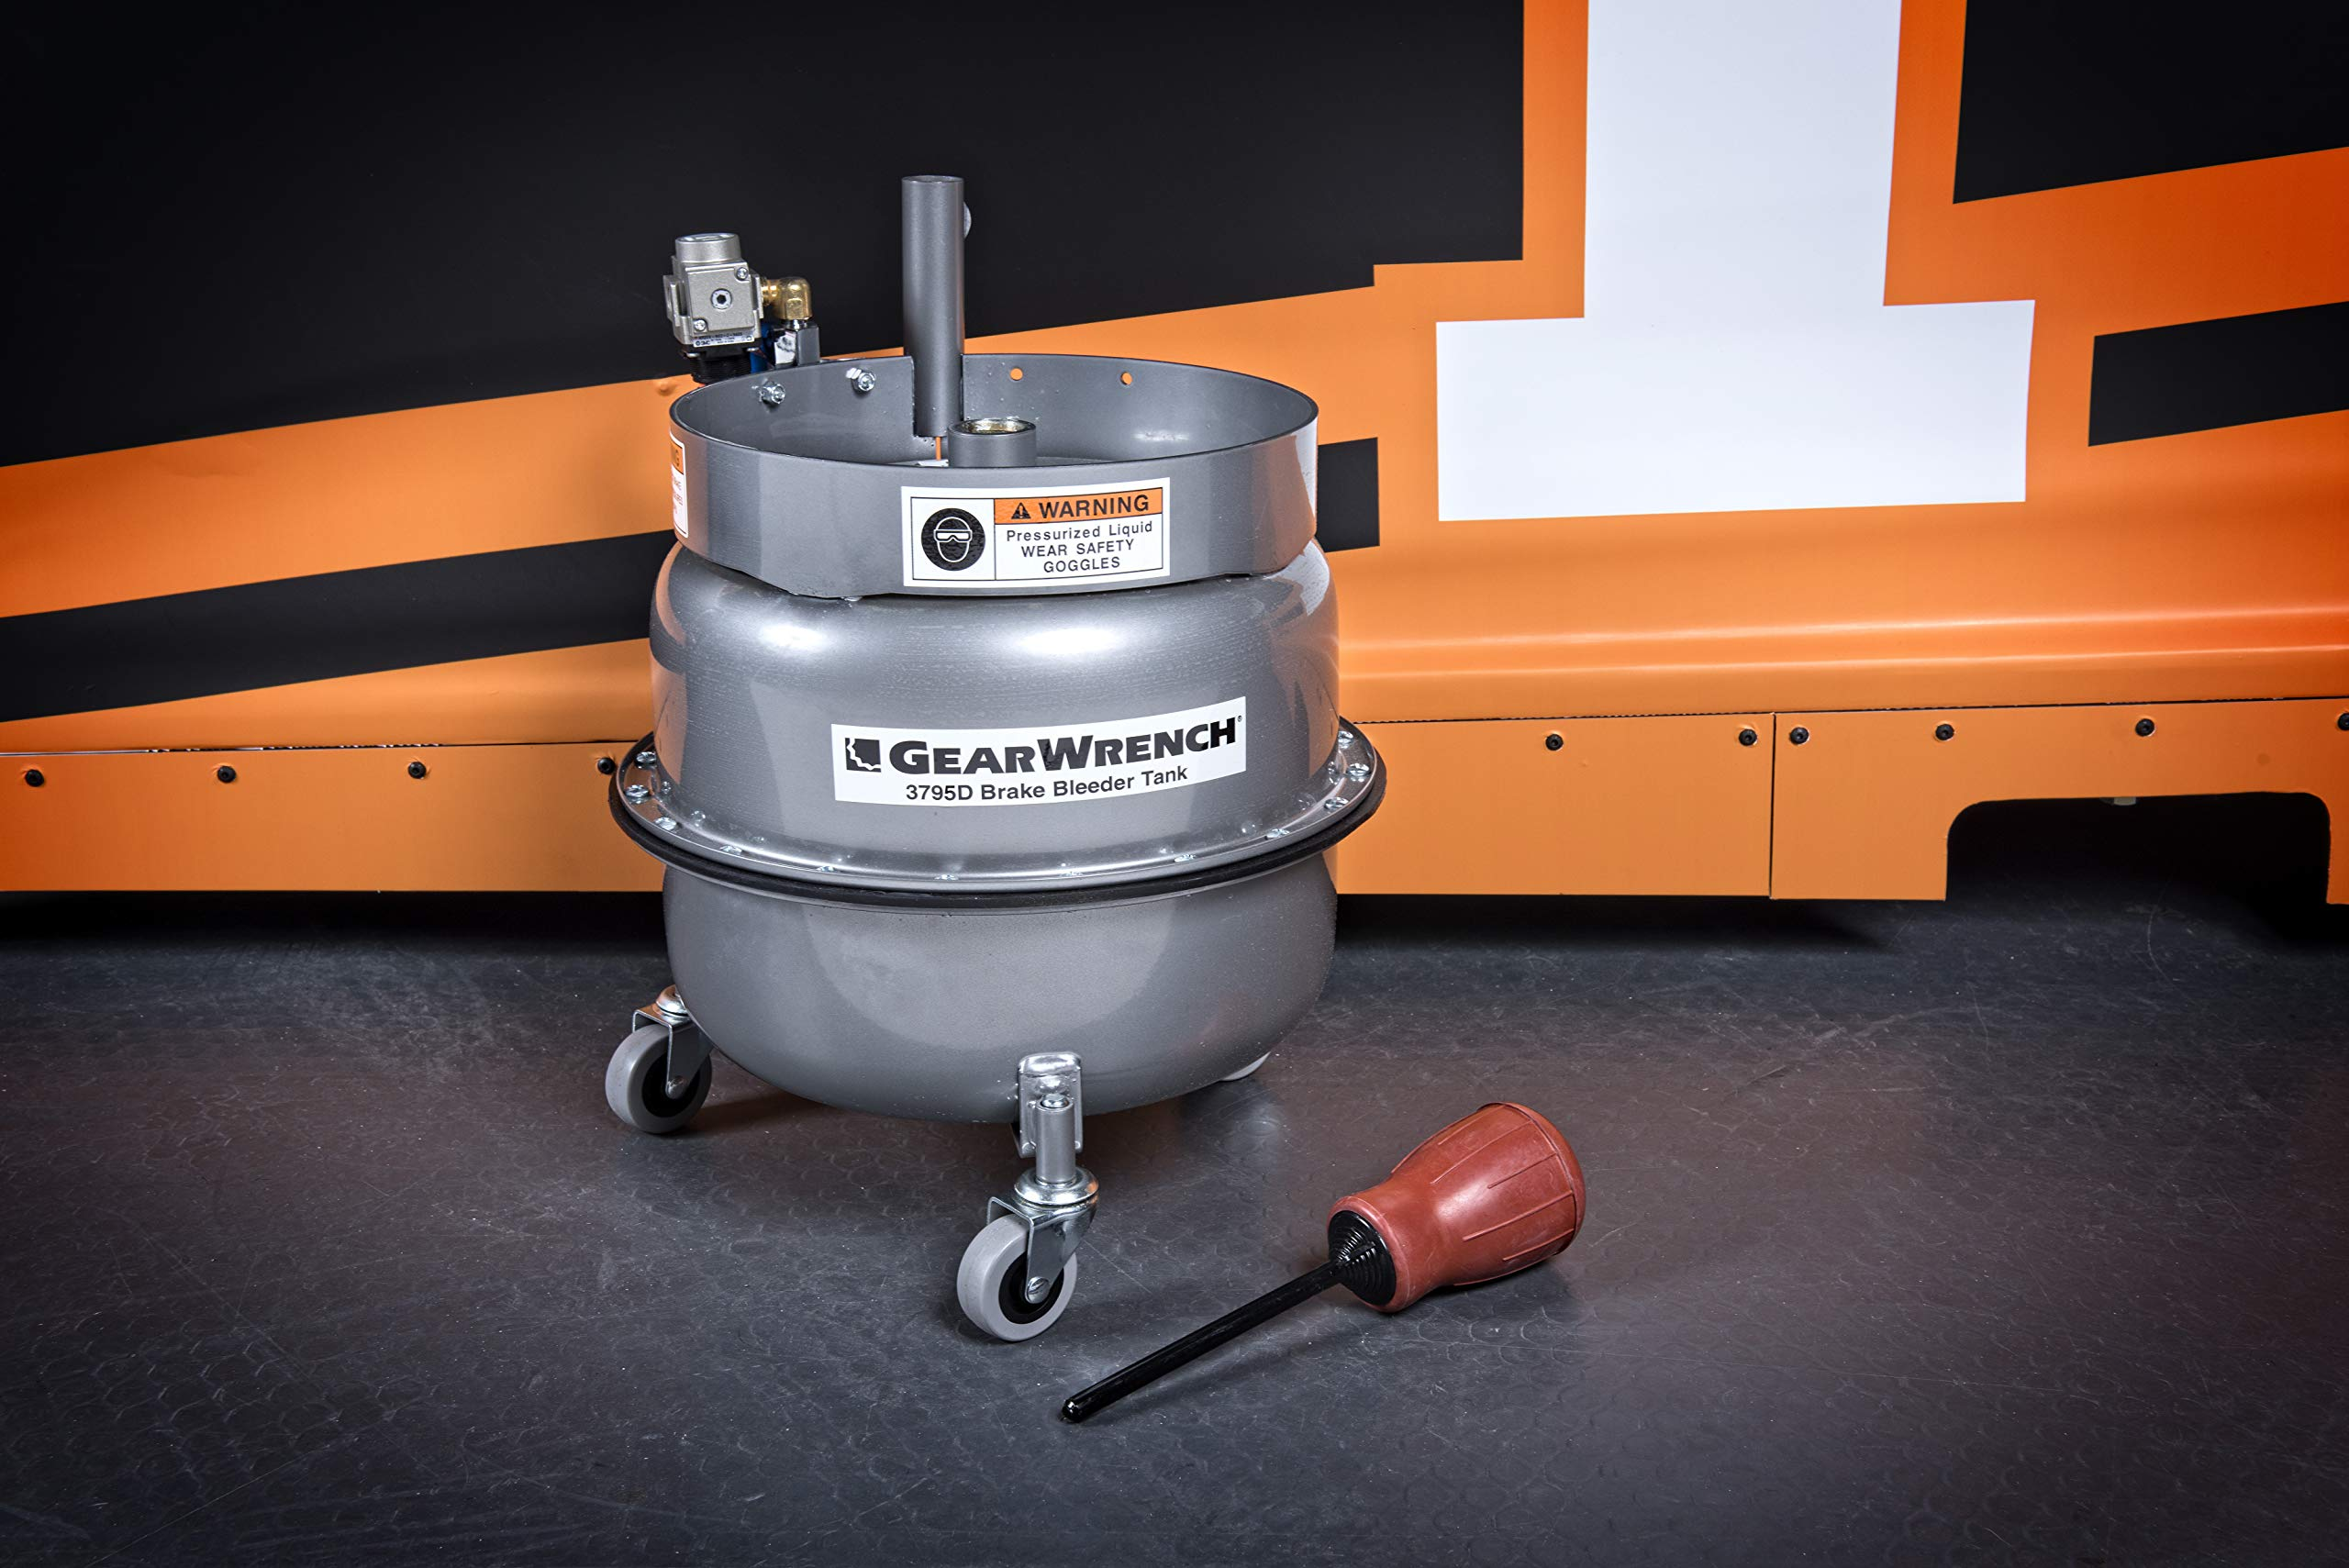 GEARWRENCH 3795D Brake Bleeder Tank by GearWrench (Image #3)